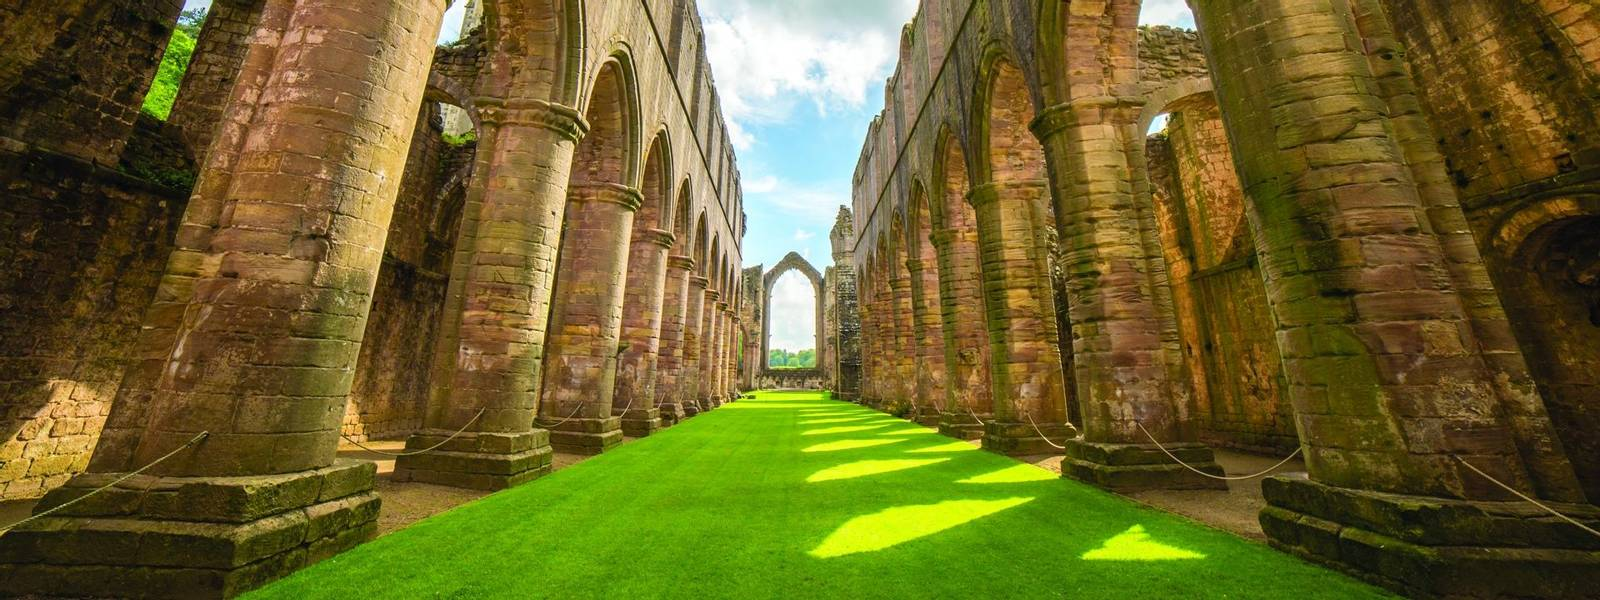 Fountains Abbey in North Yorkshire